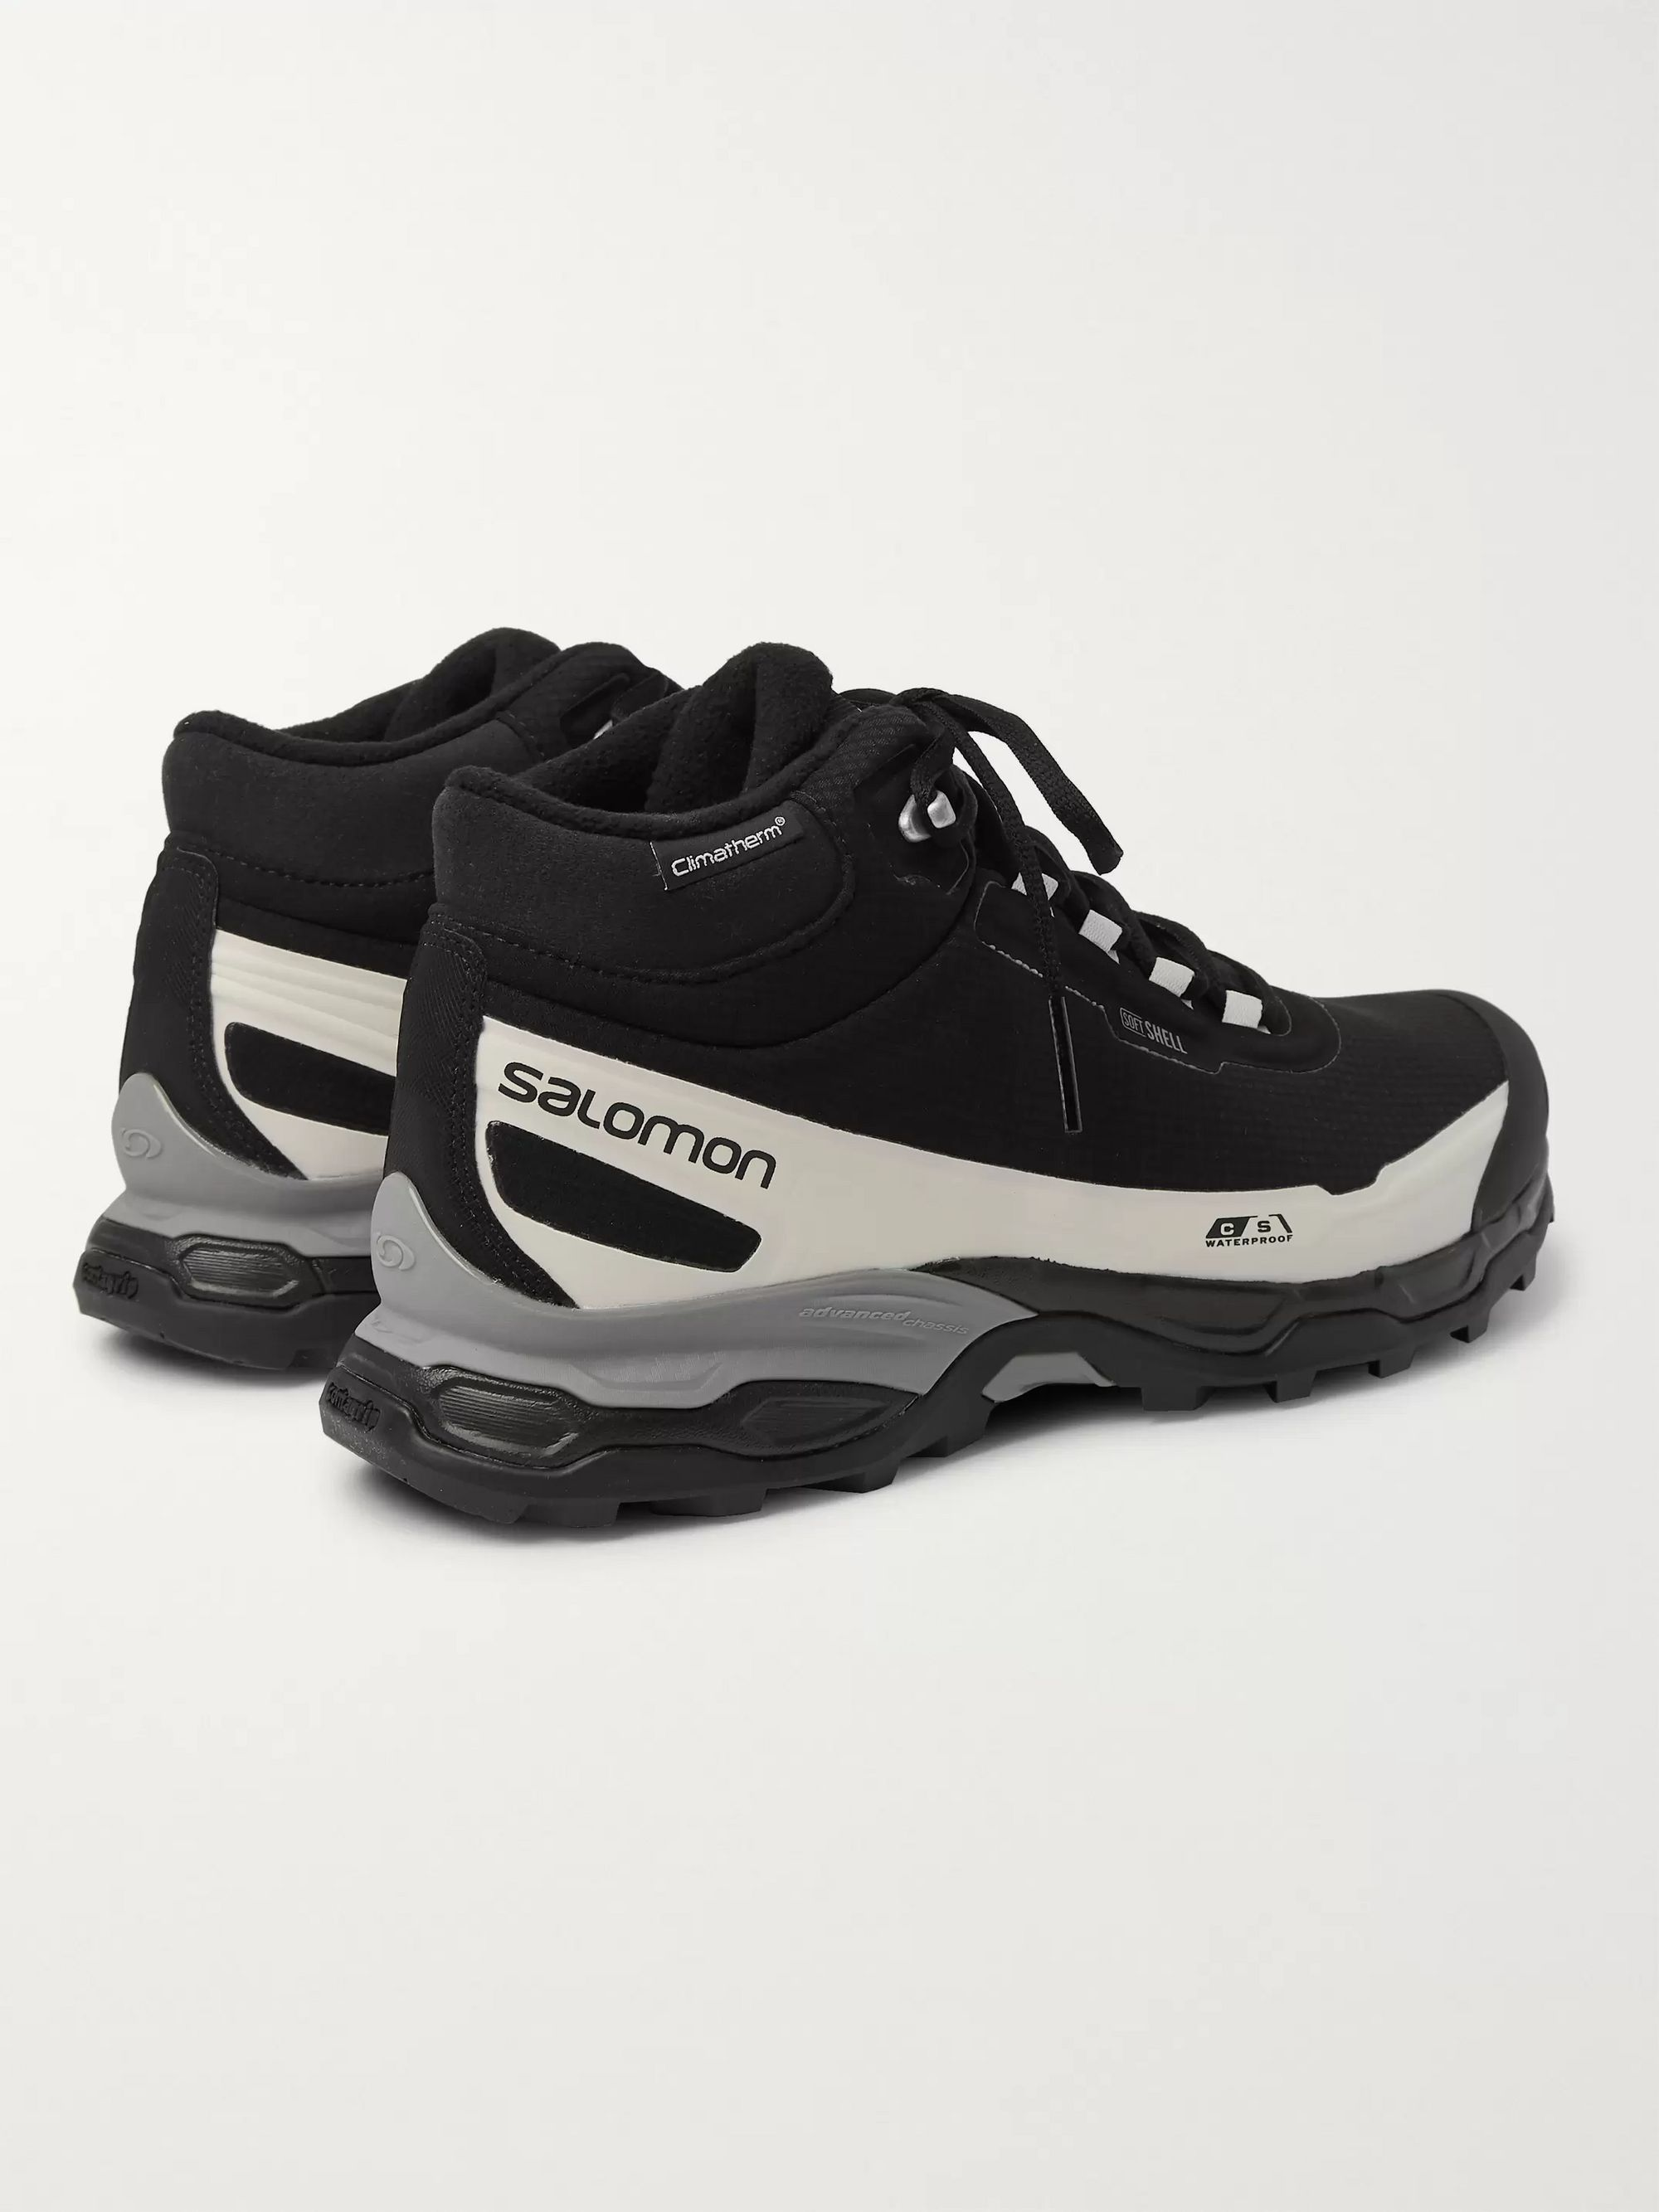 Salomon Shelter CSWP ADV Ripstop Hiking Boots